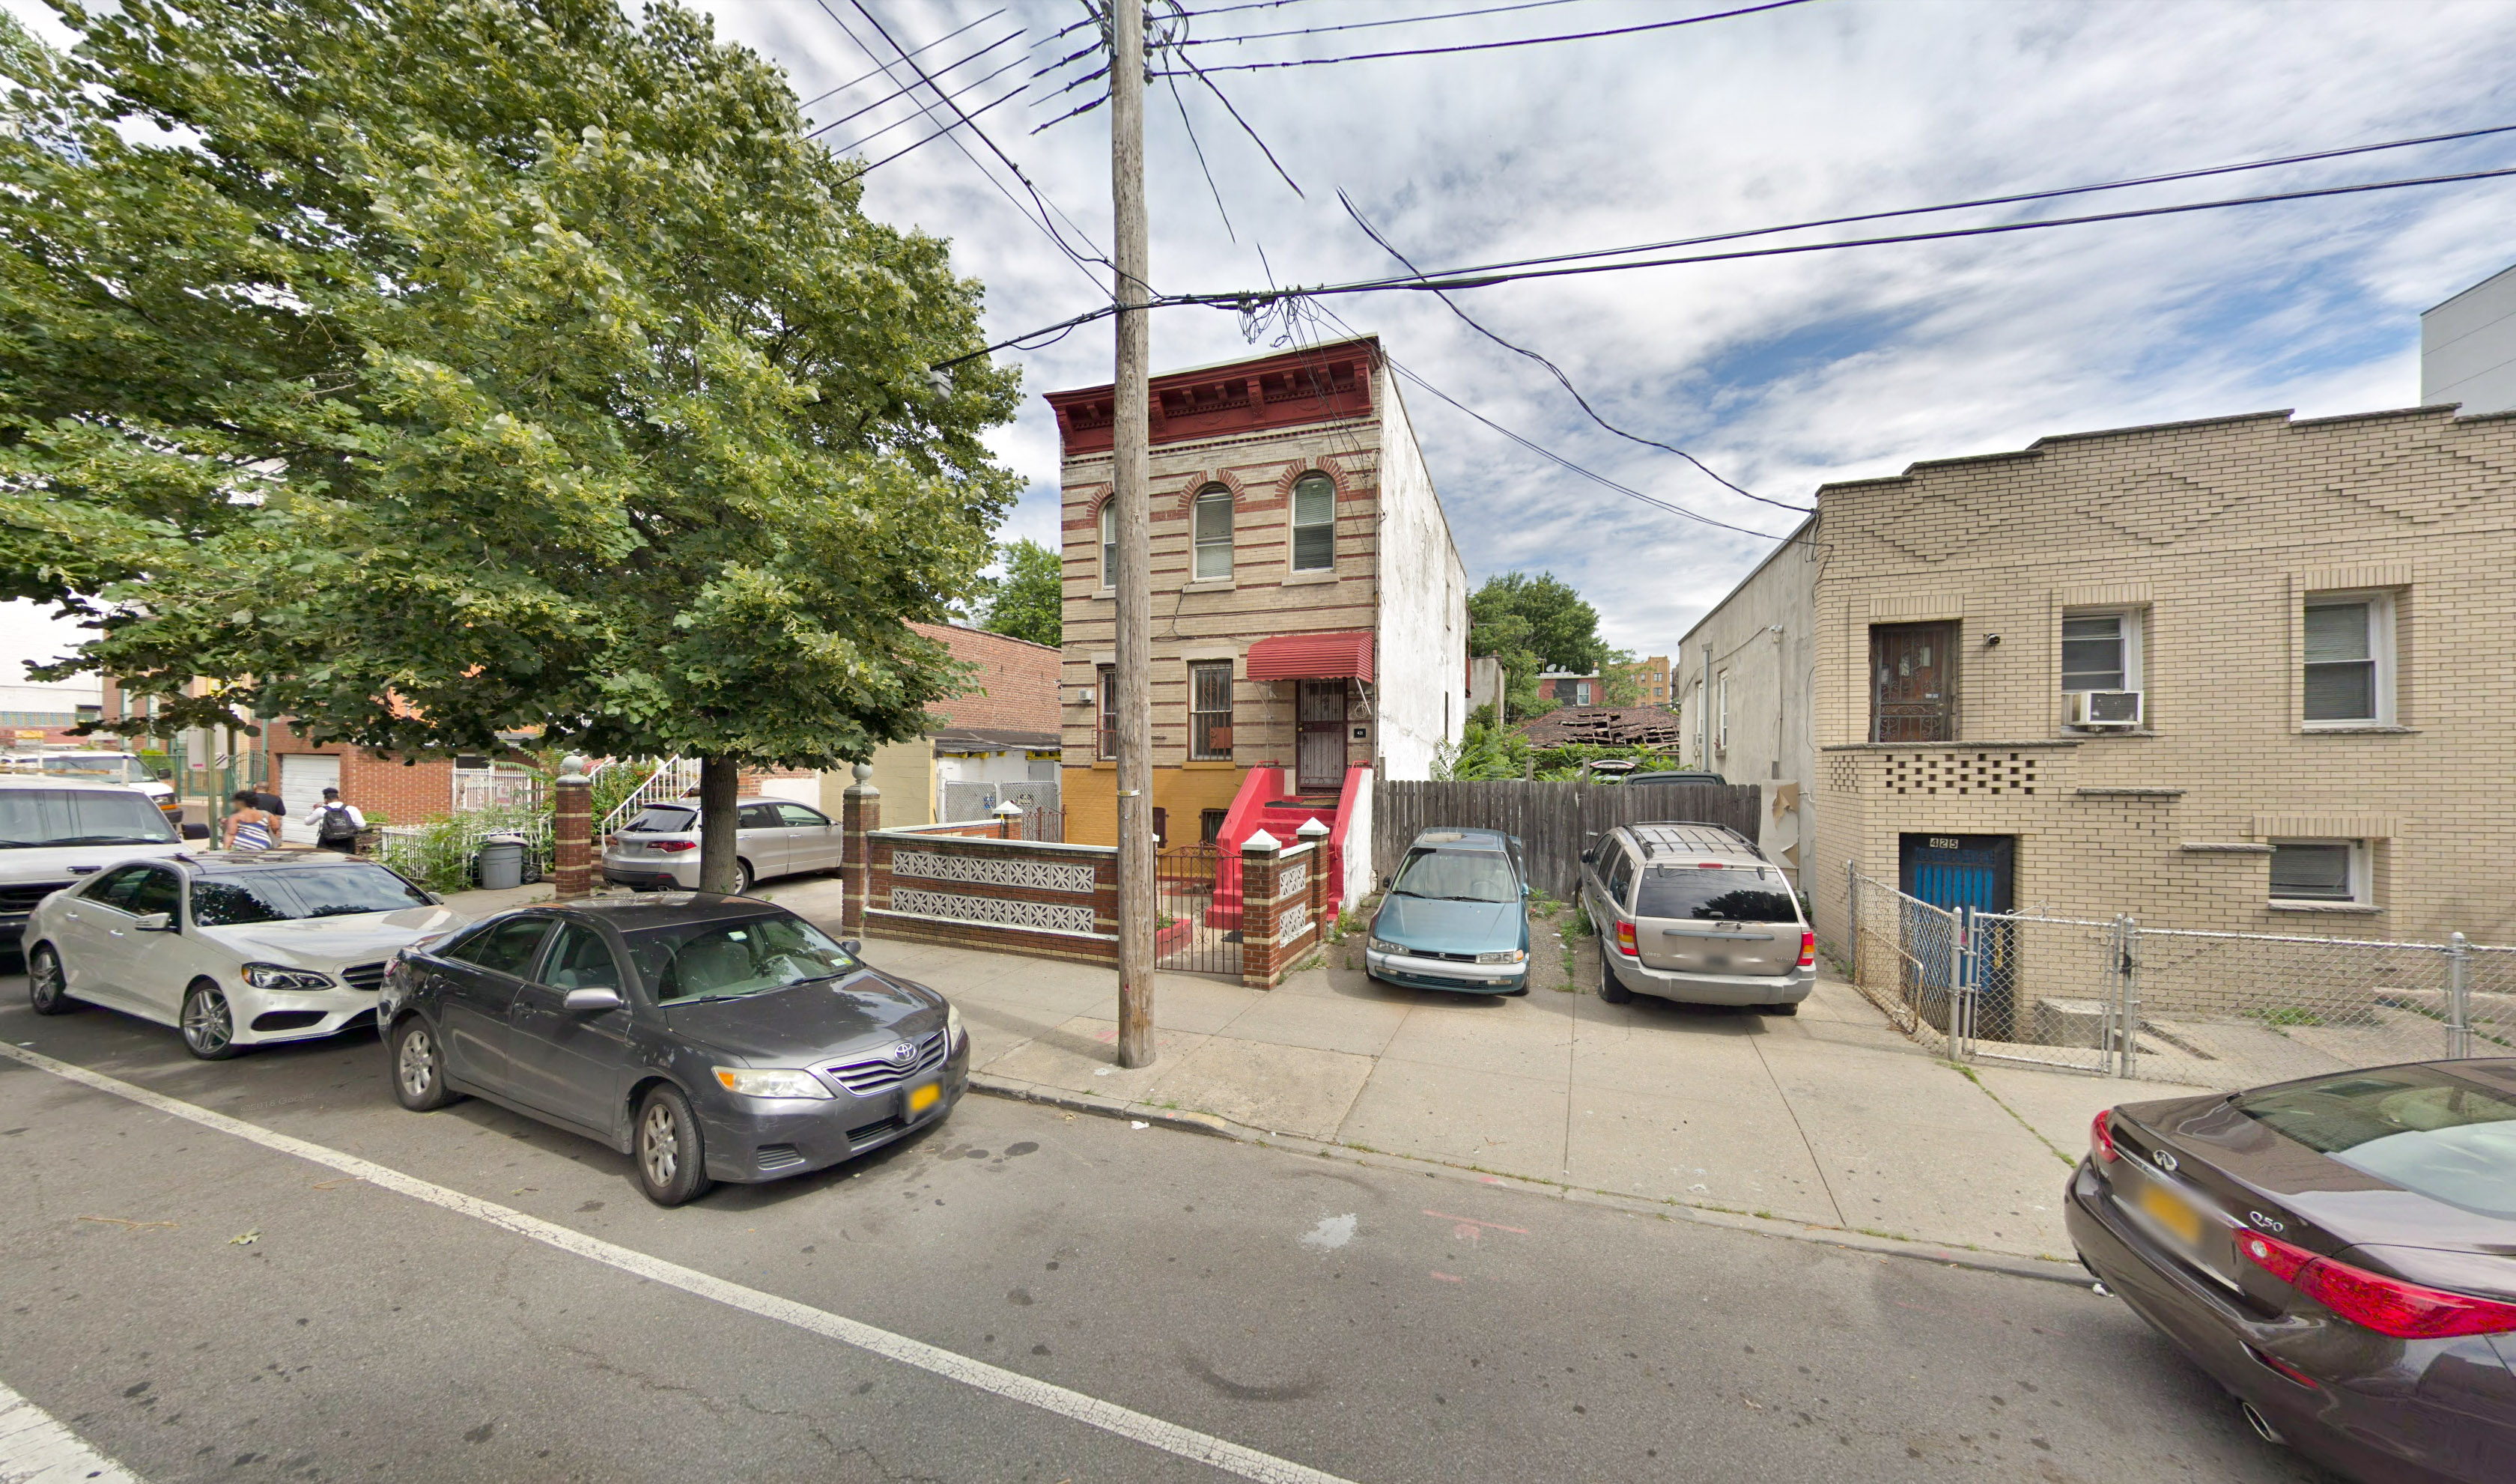 421 Maple Street, via Google Maps